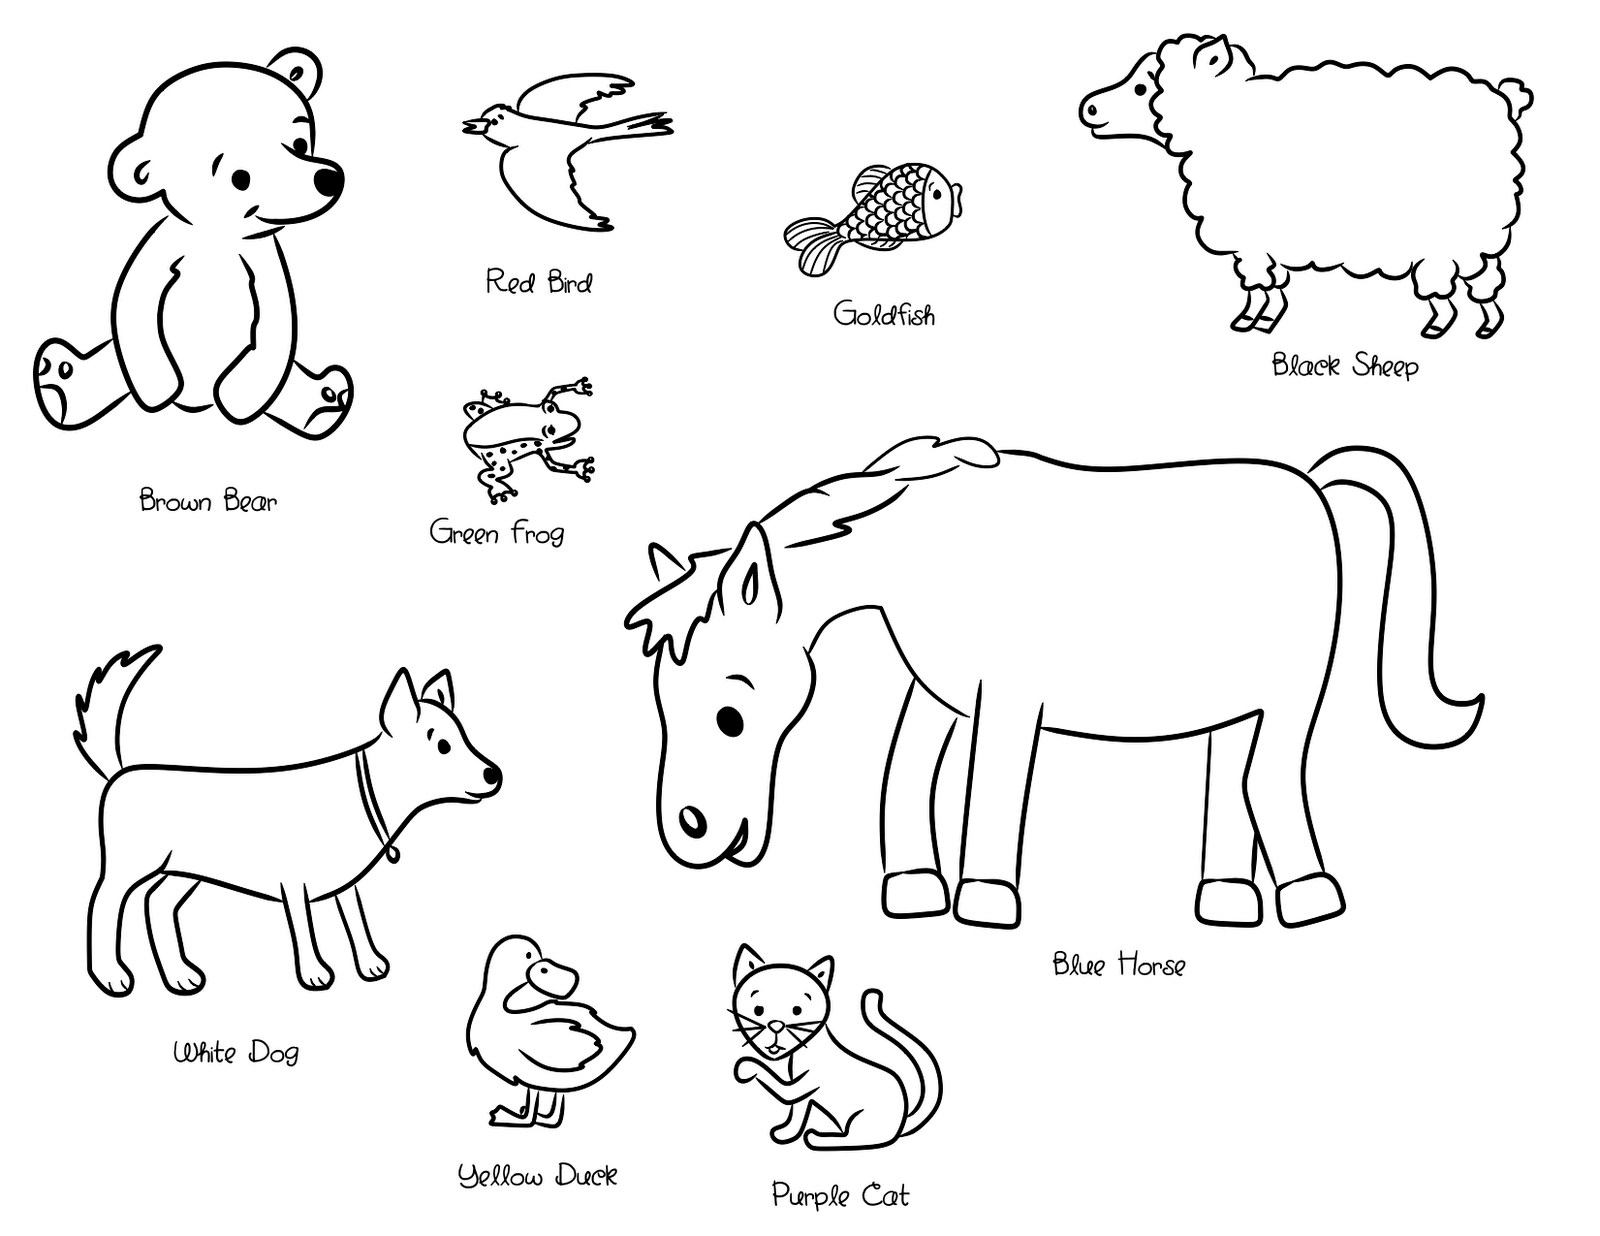 Coloring page: Brown Bear, Brown Bear, What Do You See? | Therapy on ...